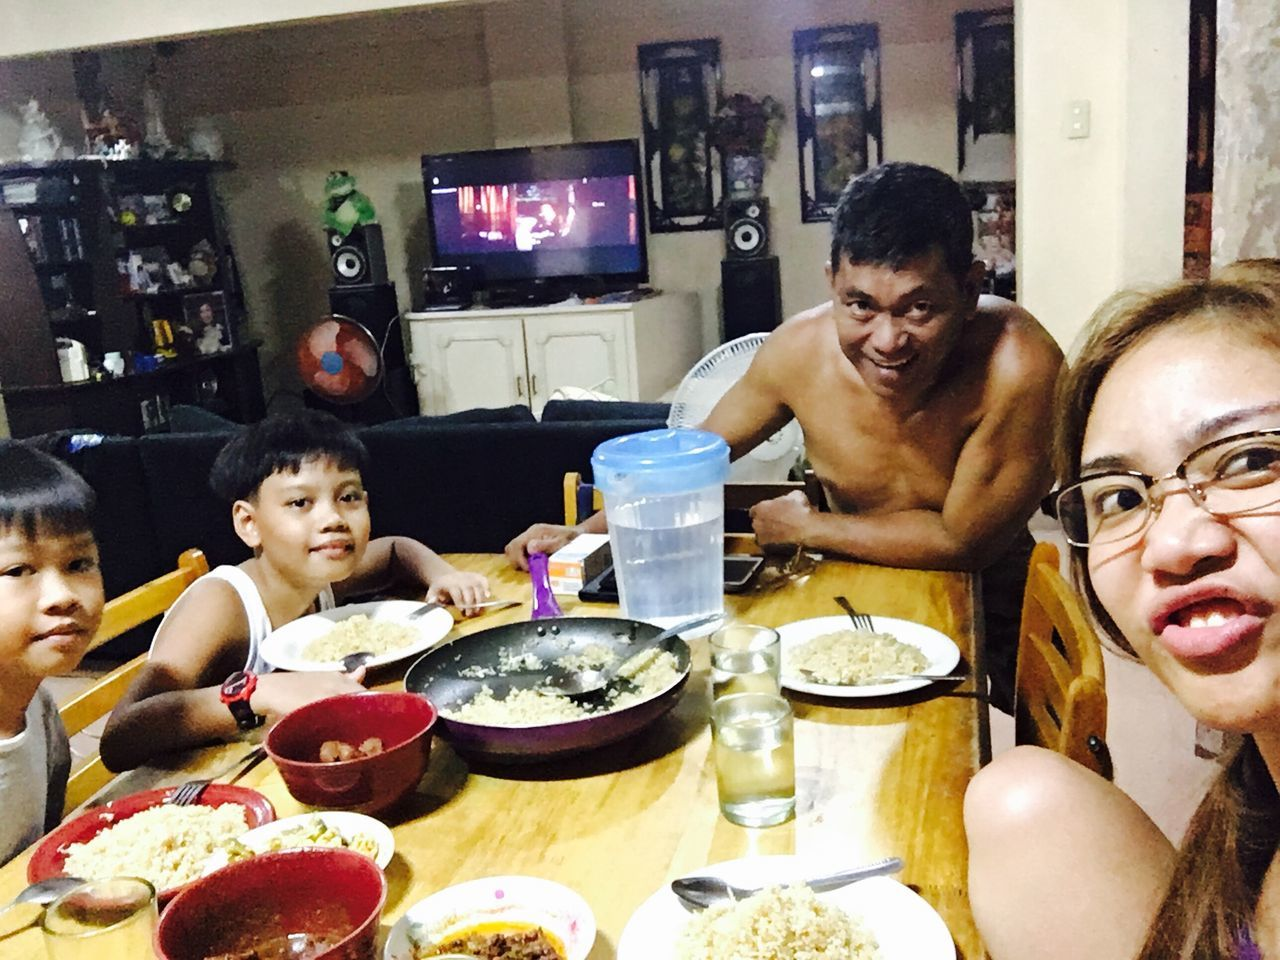 real people, indoors, lifestyles, food, leisure activity, food and drink, home interior, togetherness, boys, table, sitting, eating, young women, young adult, day